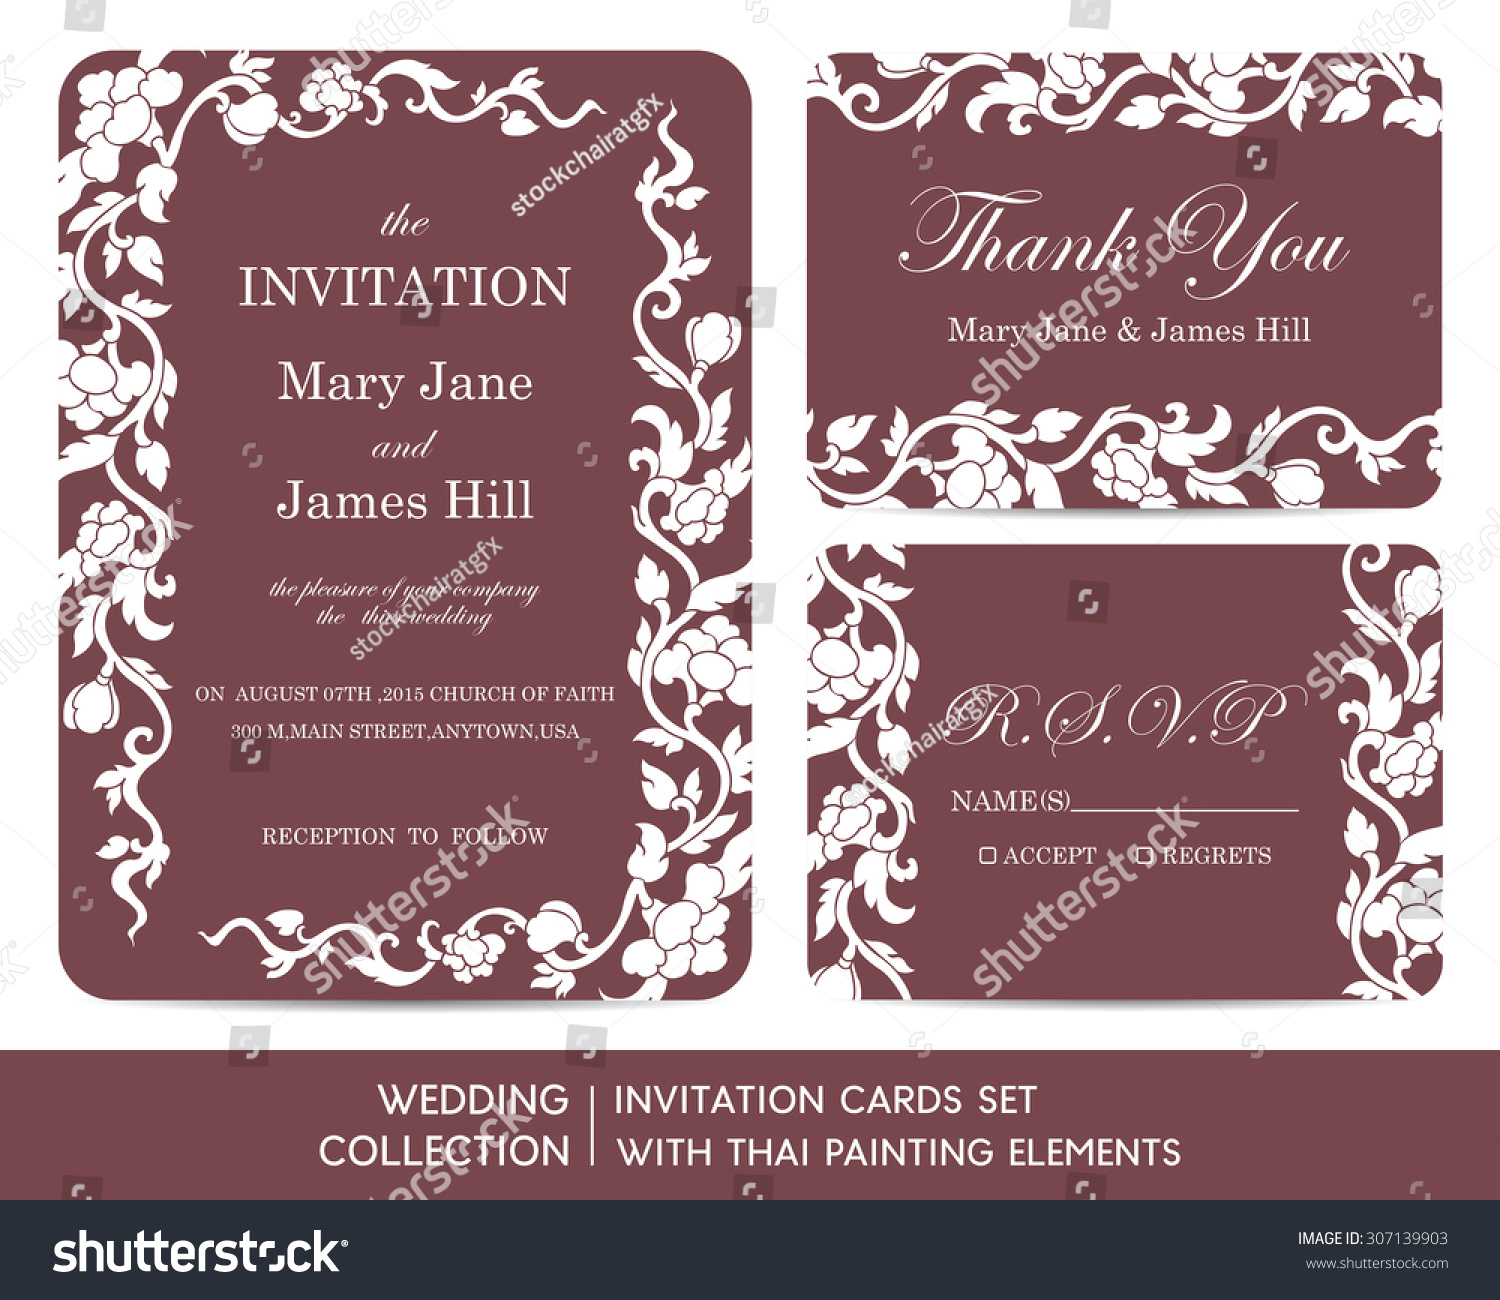 Wedding Invitation Cards Set Thai Painting Stock Vector (Royalty ...